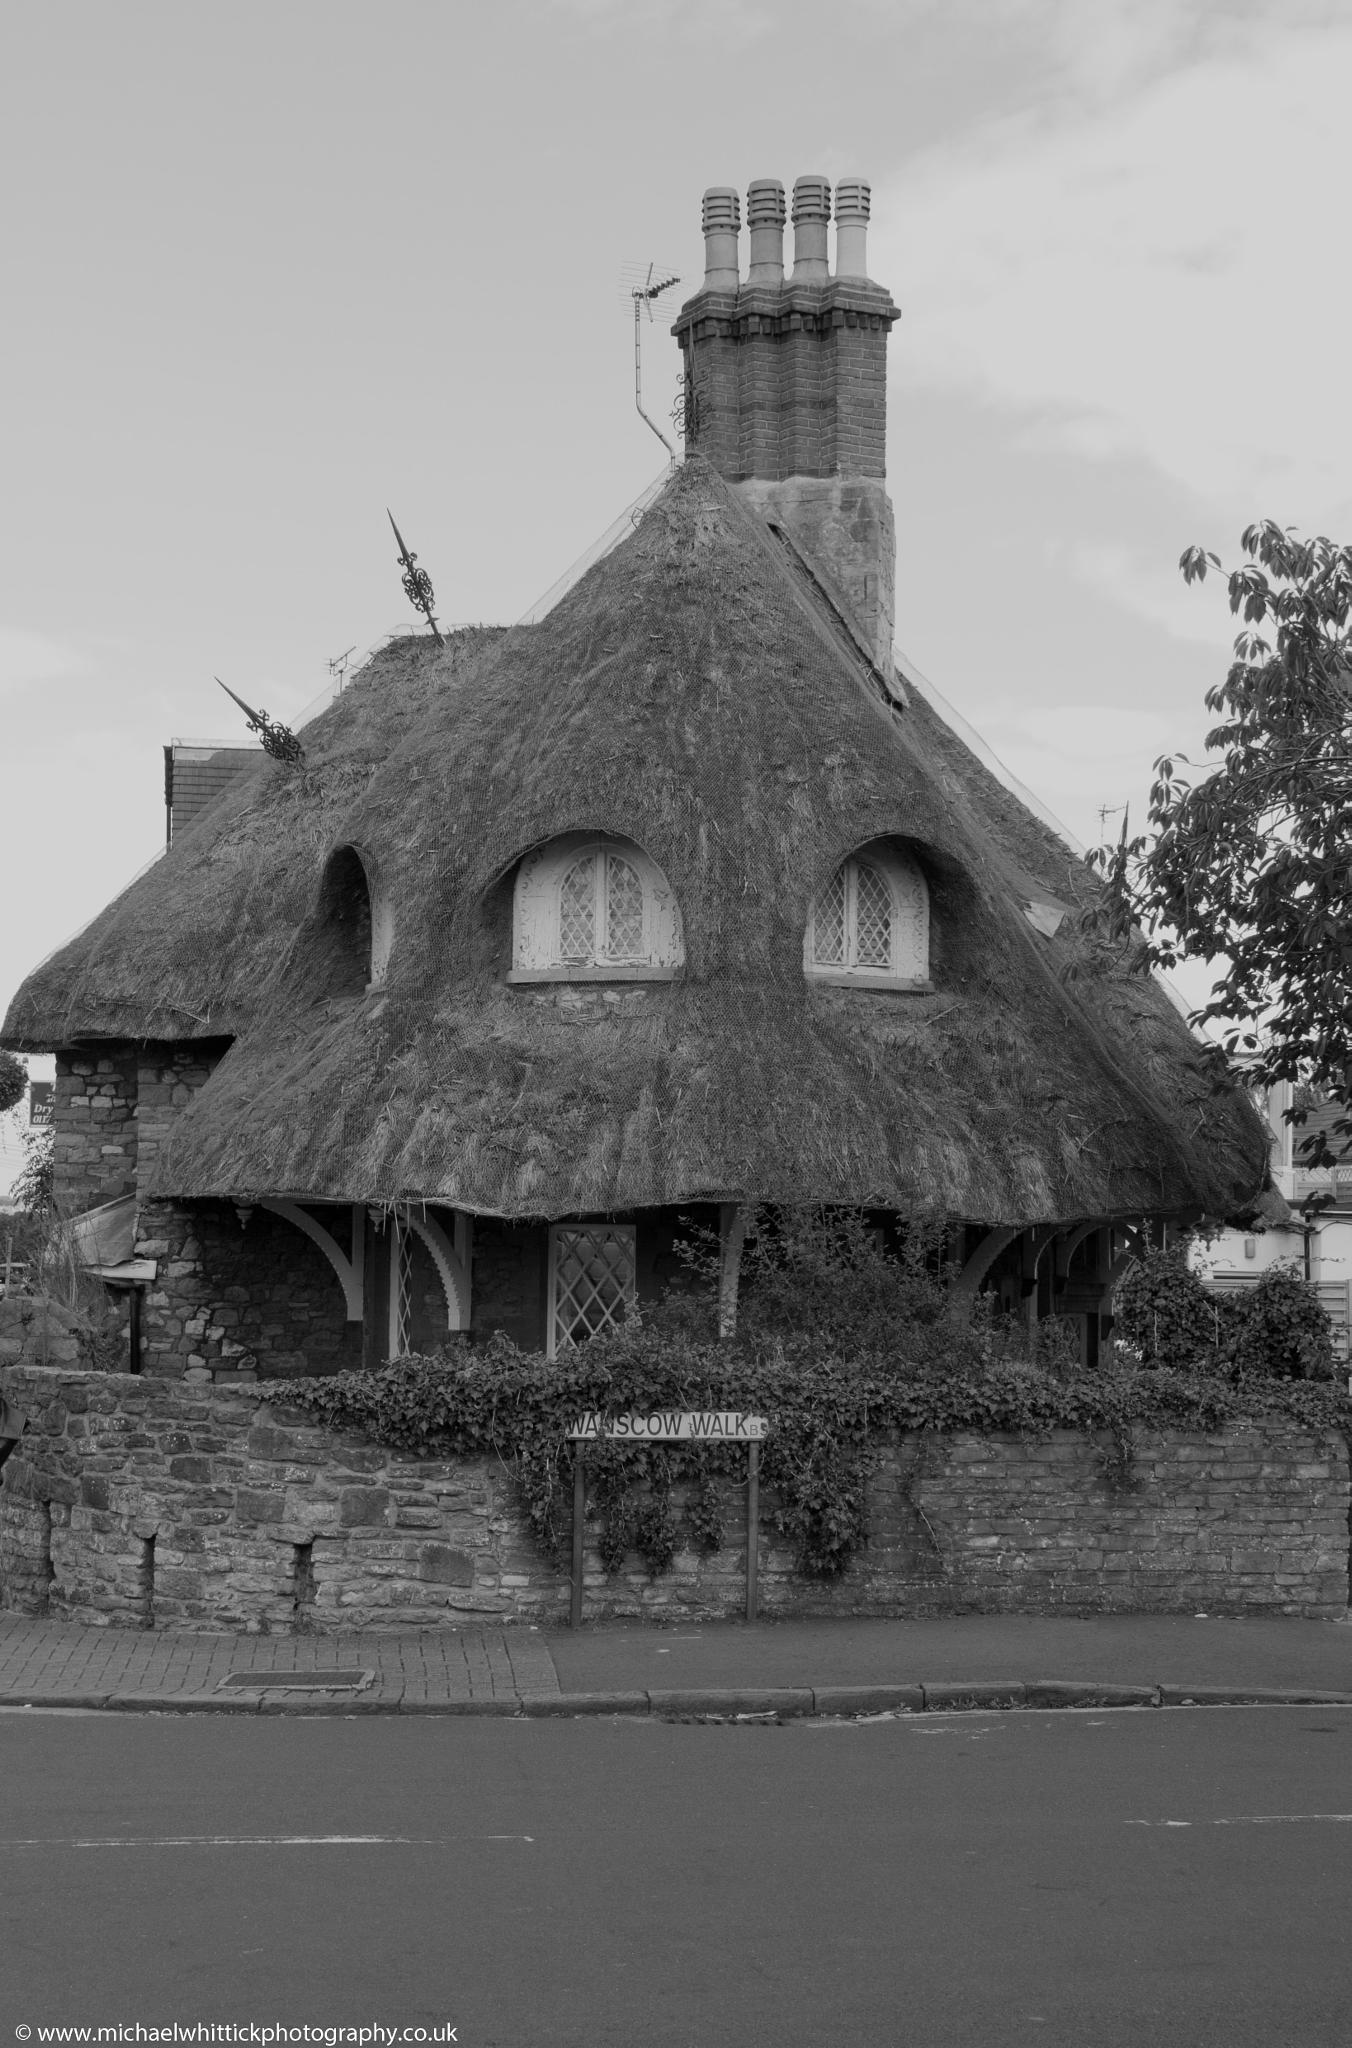 Thatched Cottage by Michael Whittick